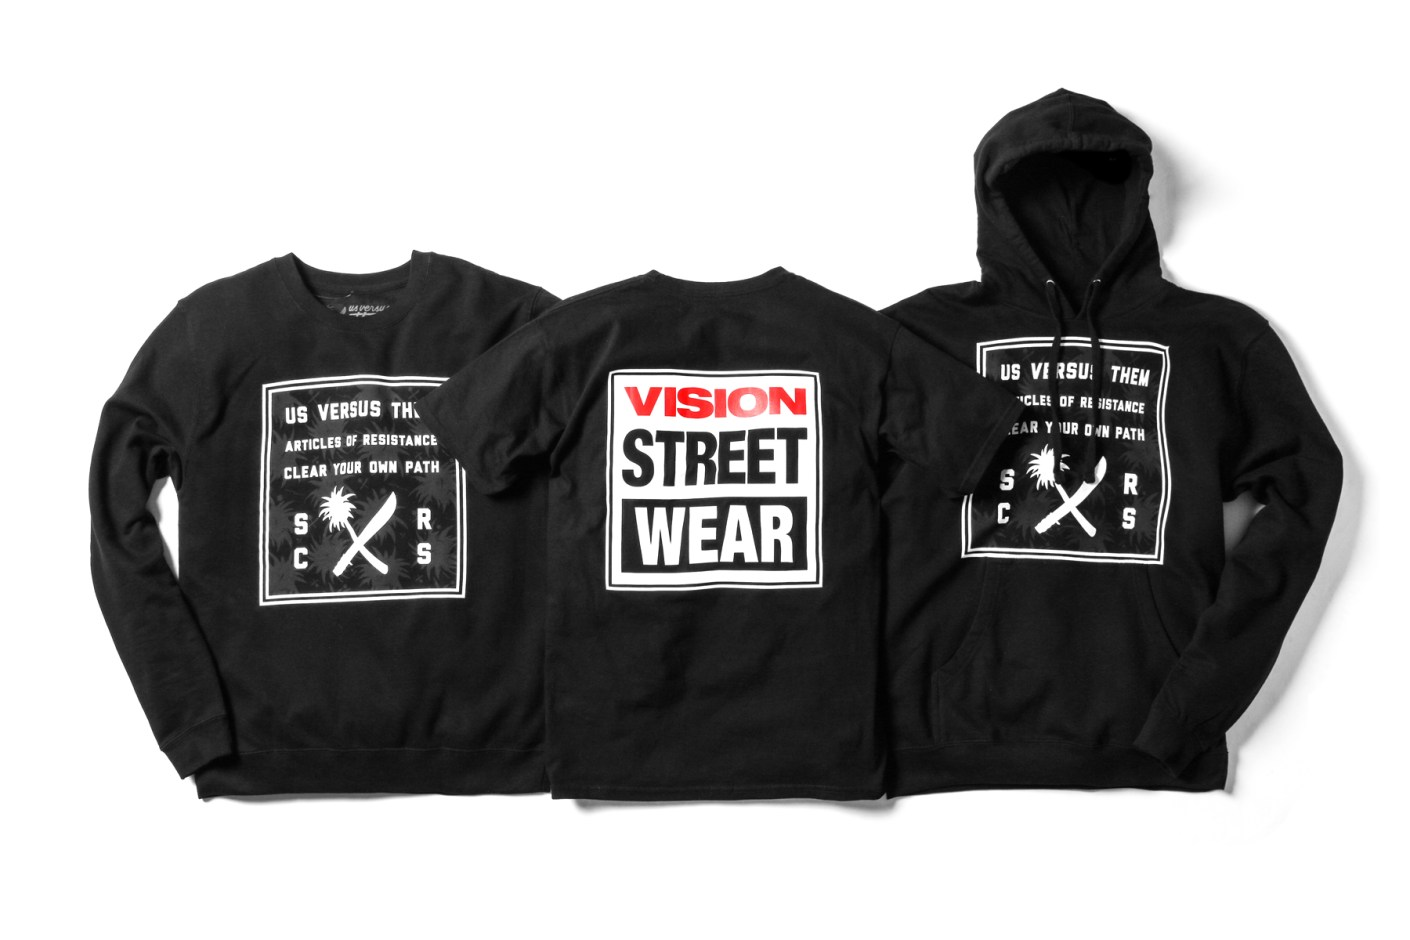 Image of Vision Street Wear x Us Versus Them 2014 Collection